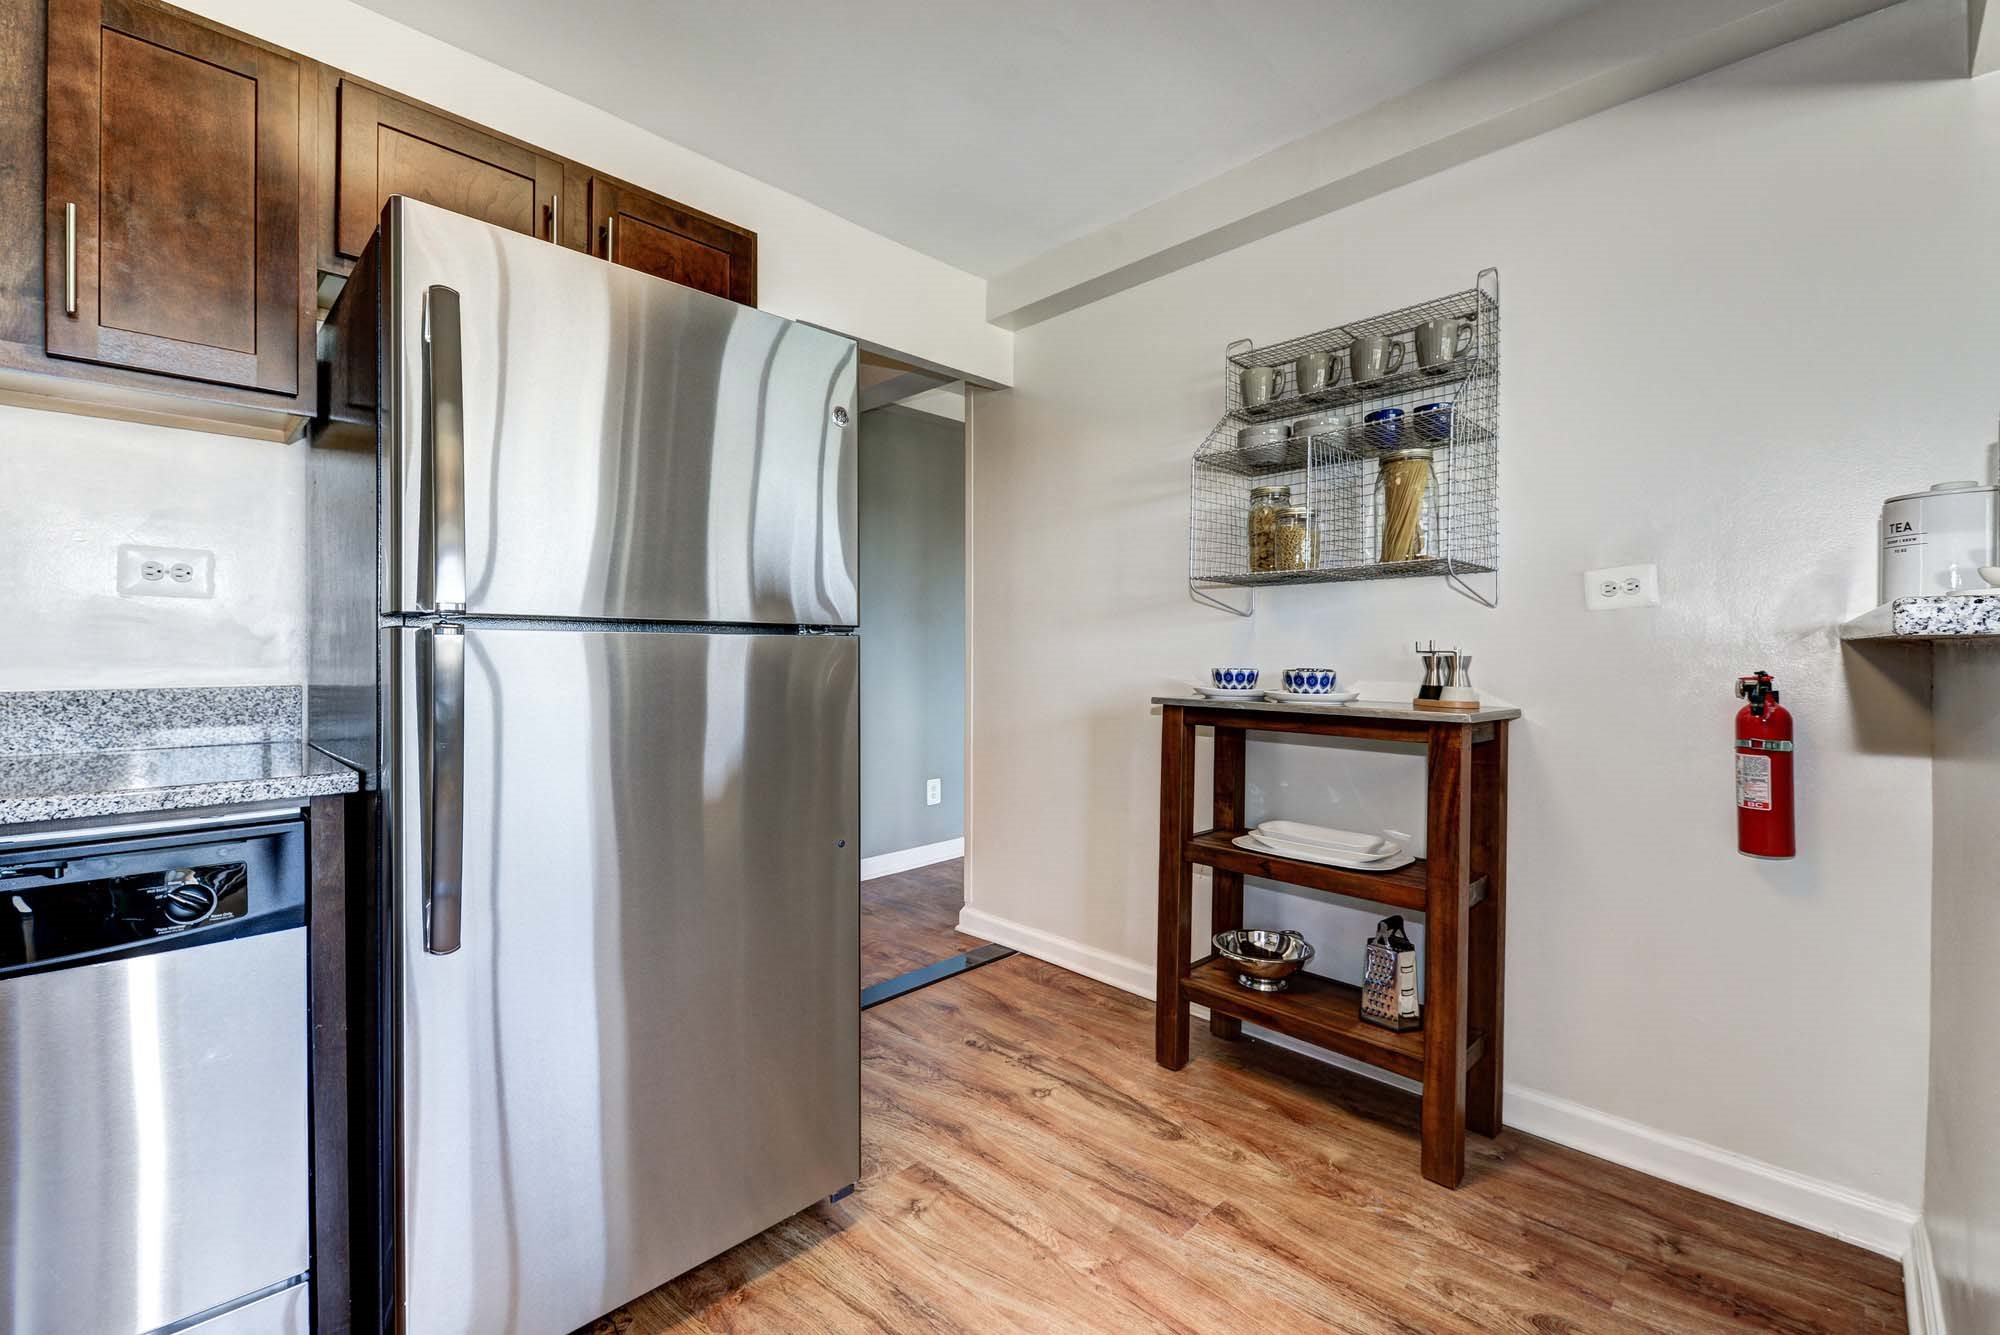 Kitchen With Stainless Steel Appliances at The Mark Apartments, Virginia, 22304